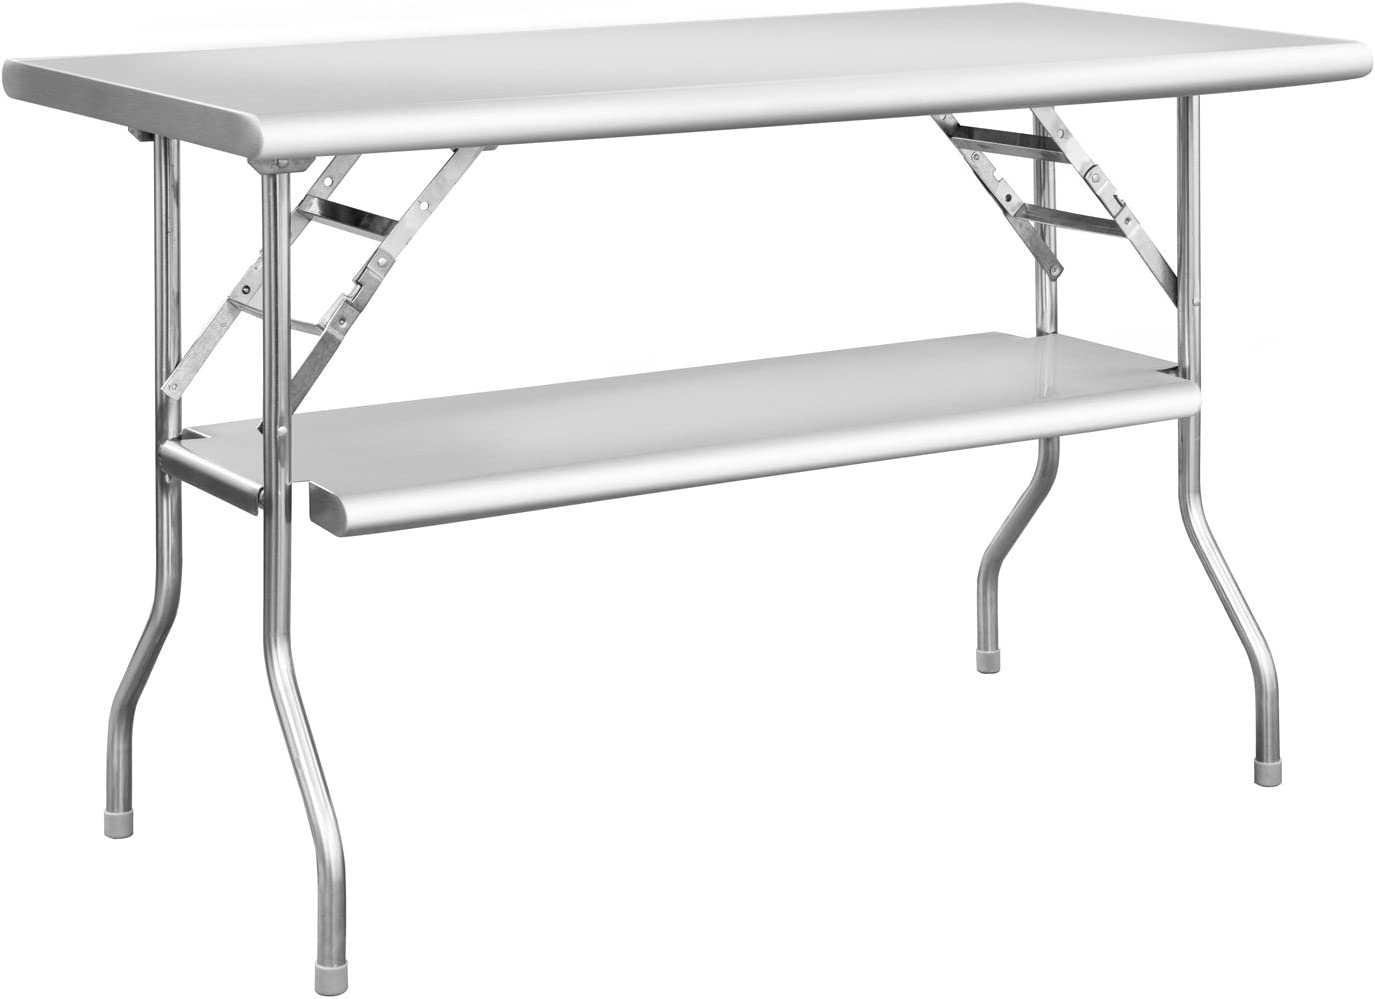 "Royal Gourmet Commercial Stainless Steel Double-Shelf Folding Work Table, 48"" L x 24"" W"